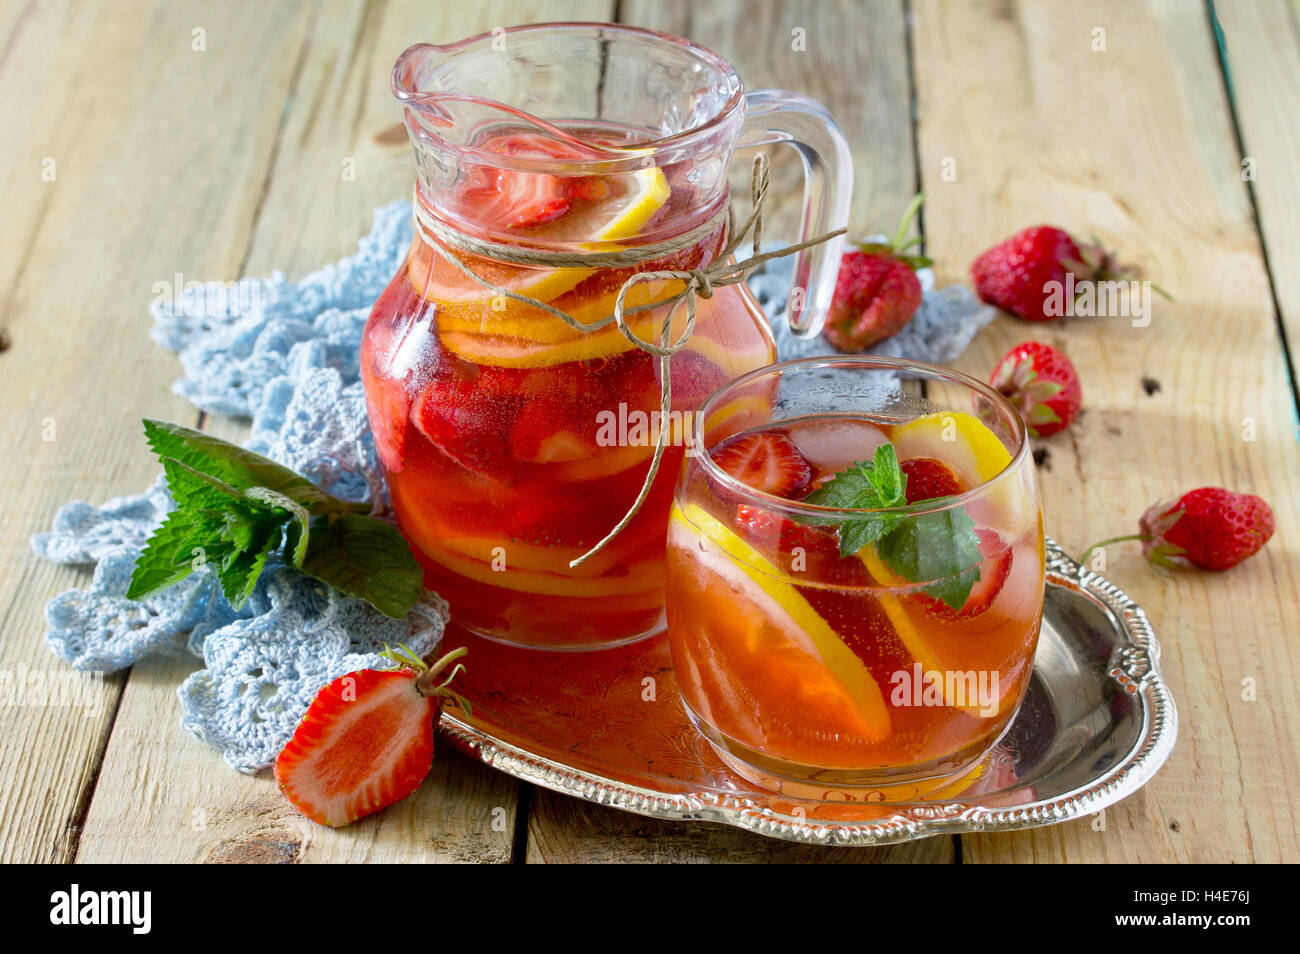 Tradition Summer mojito drink with lemon and mint with copy space in a rustic style. - Stock Image